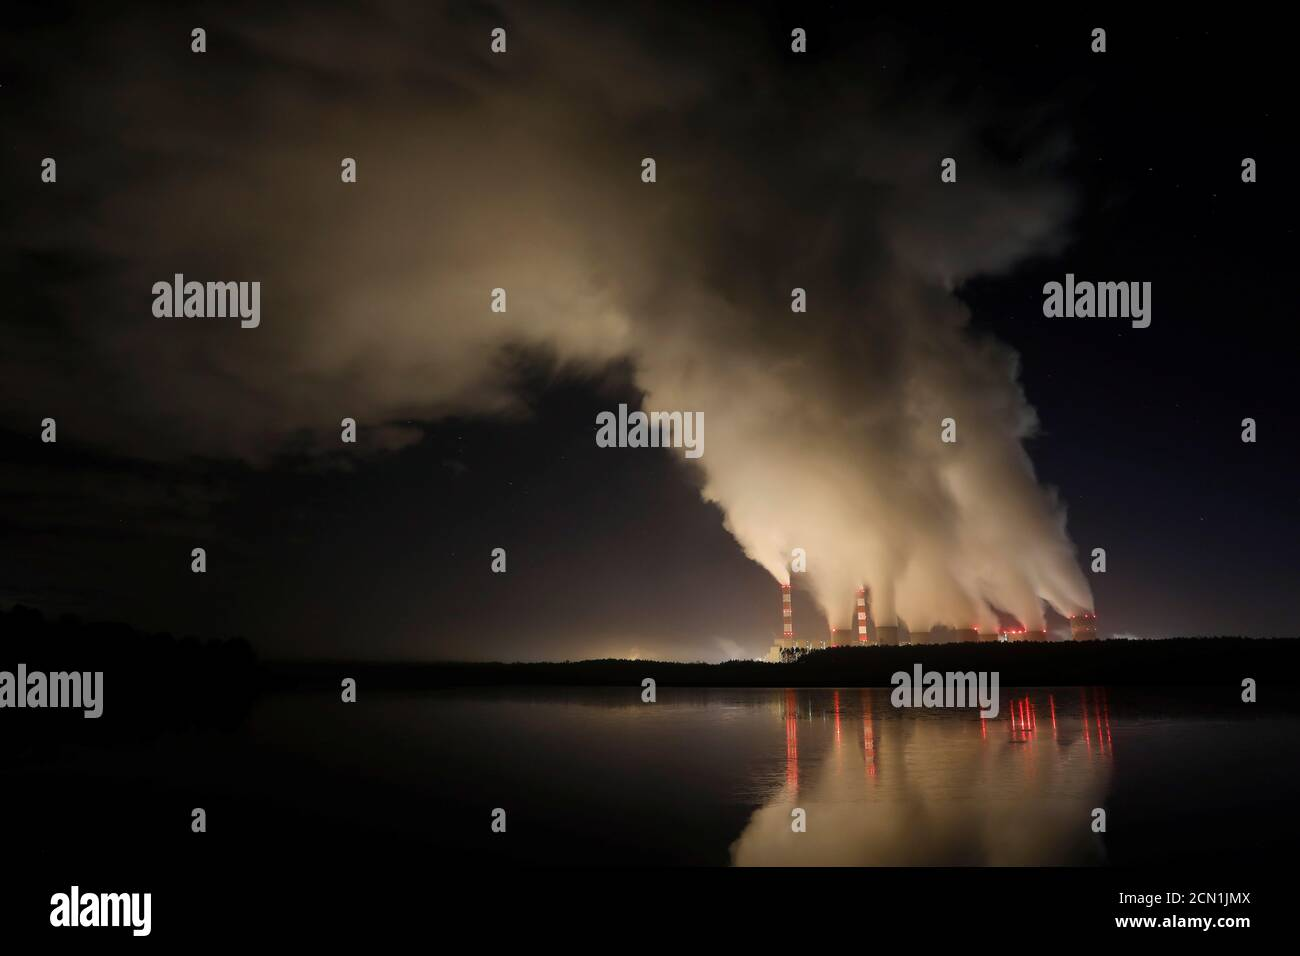 Smoke and steam billows from Belchatow Power Station, Europe's largest coal-fired power plant operated by PGE Group, at night near Belchatow, Poland December 5, 2018. Picture taken December 5, 2018. REUTERS/Kacper Pempel Stock Photo